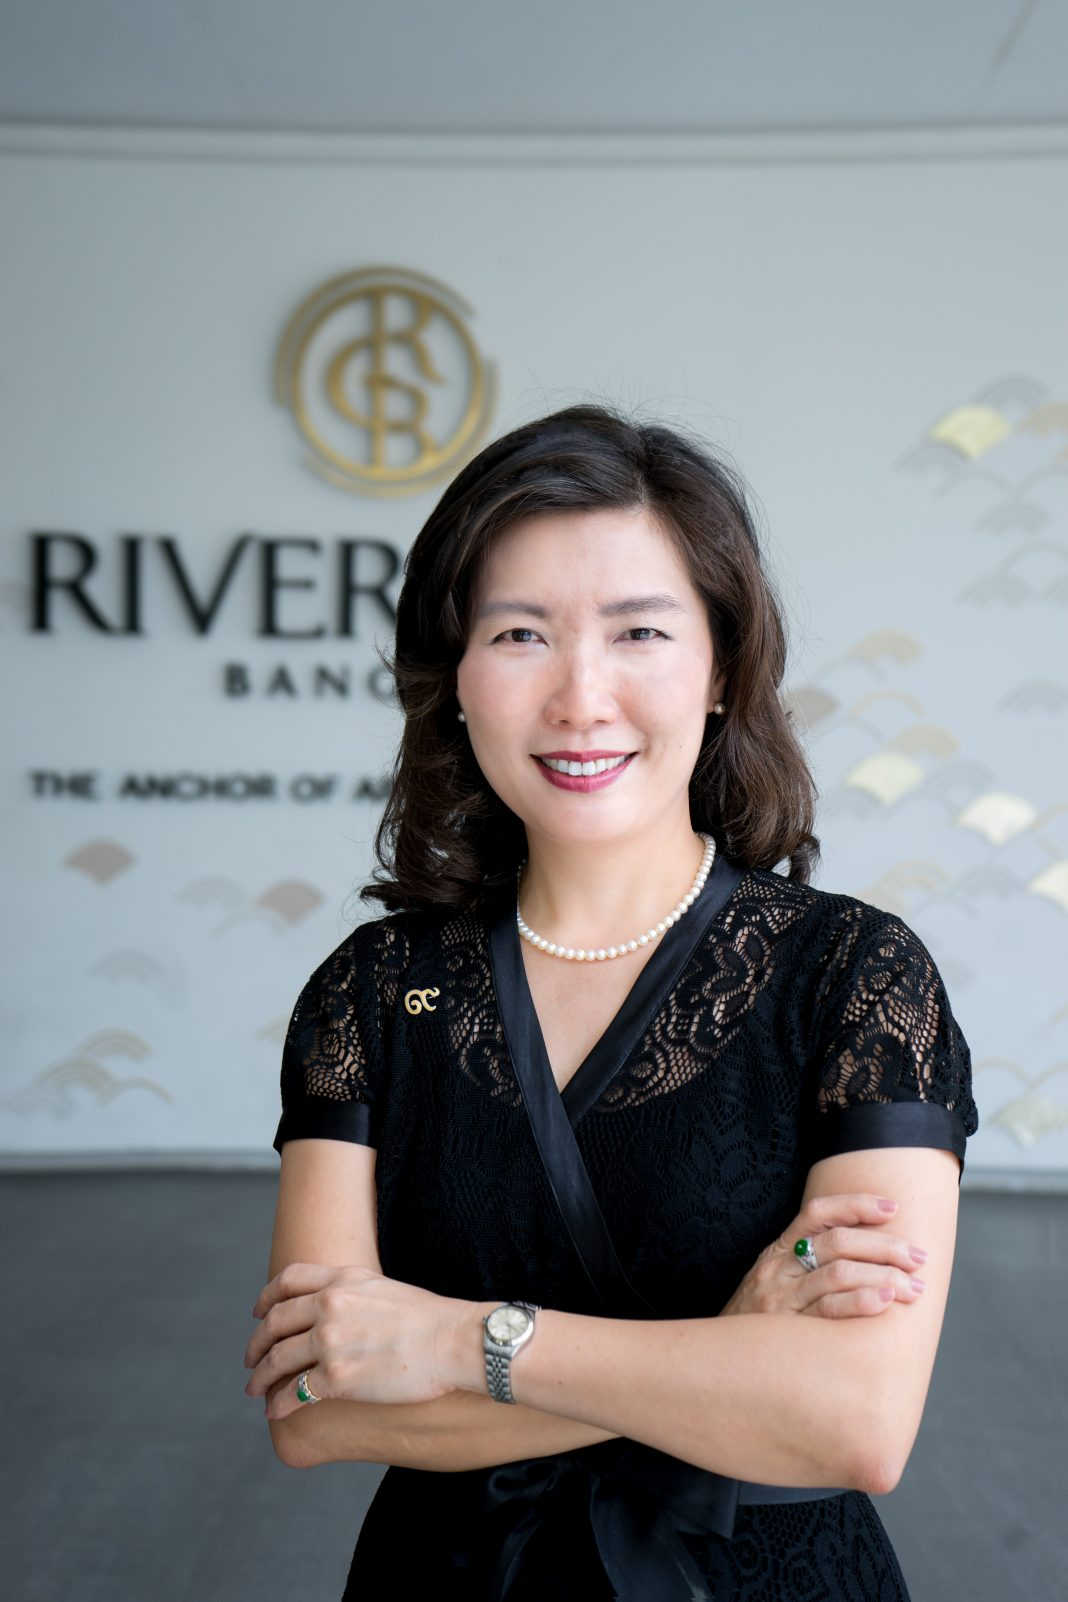 RCB Linda River City Bangkok